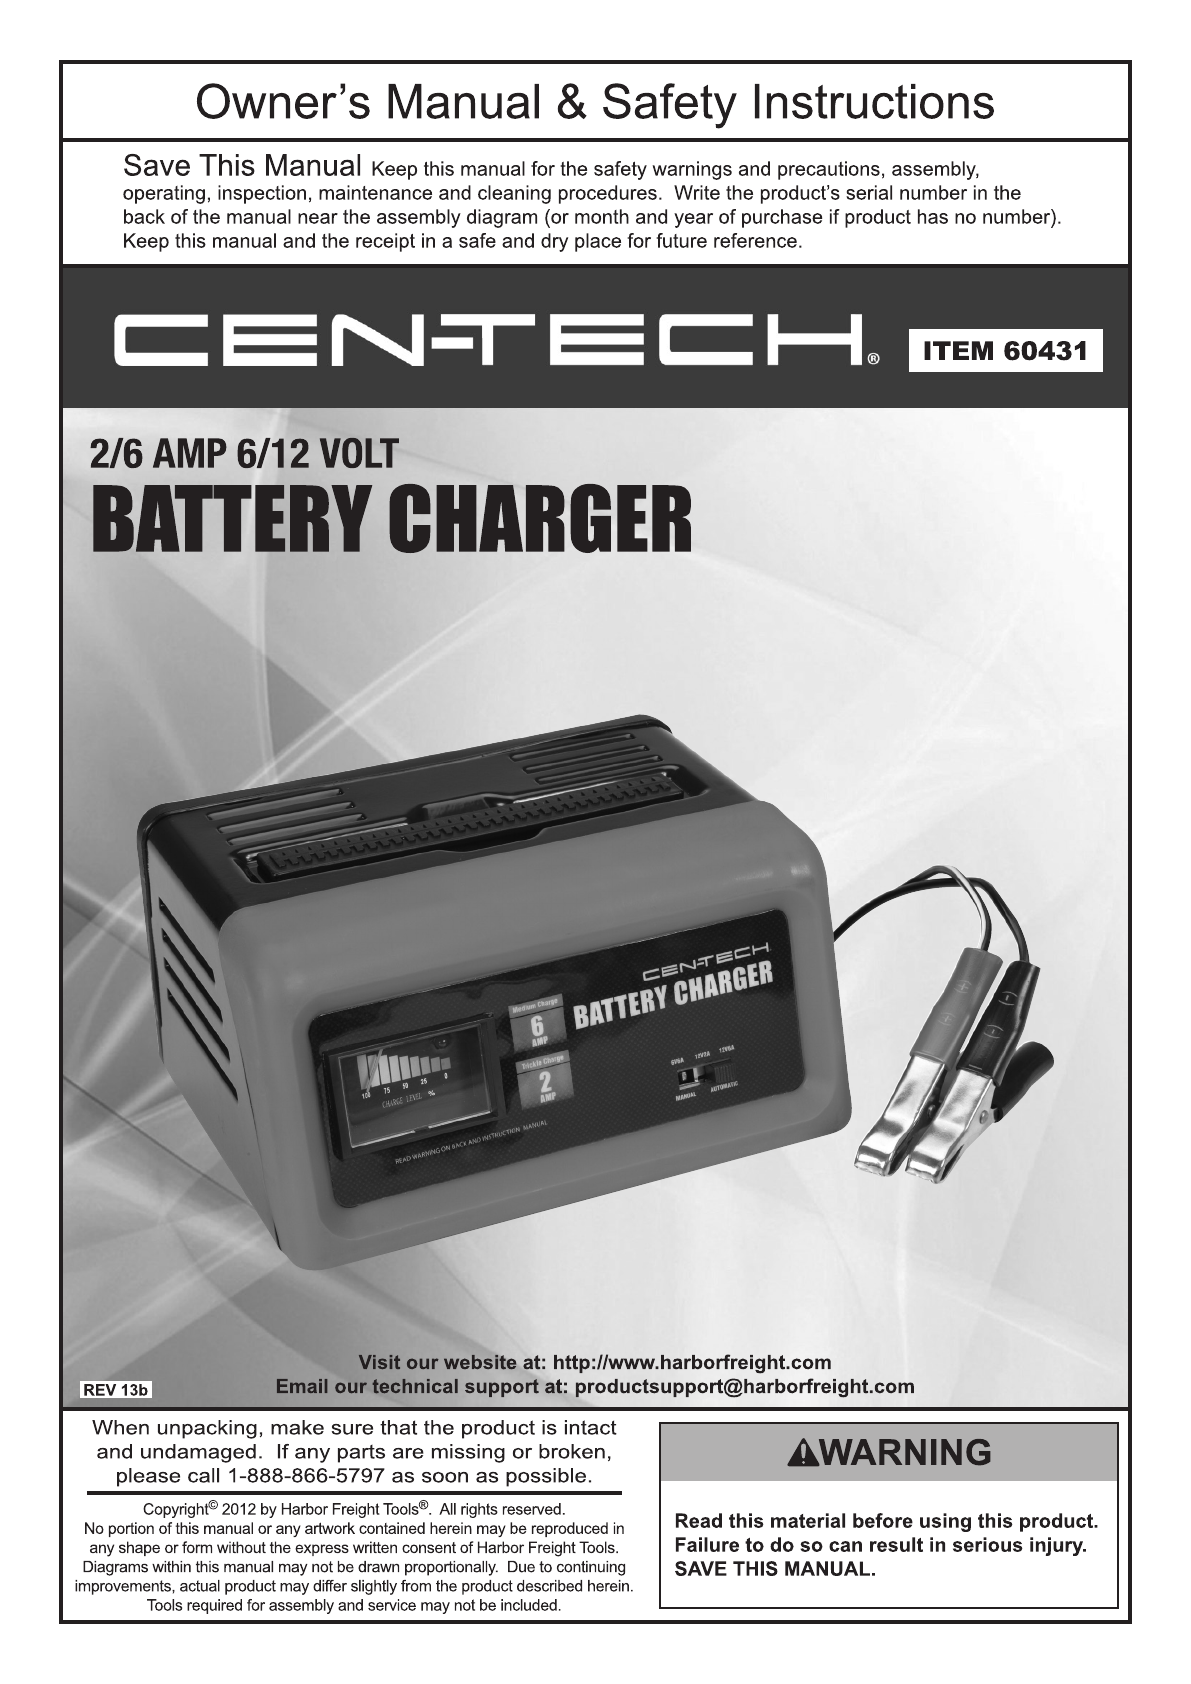 Harbor Freight Tools Automobile Battery Charger 60431 User Guide Manualsonline Com